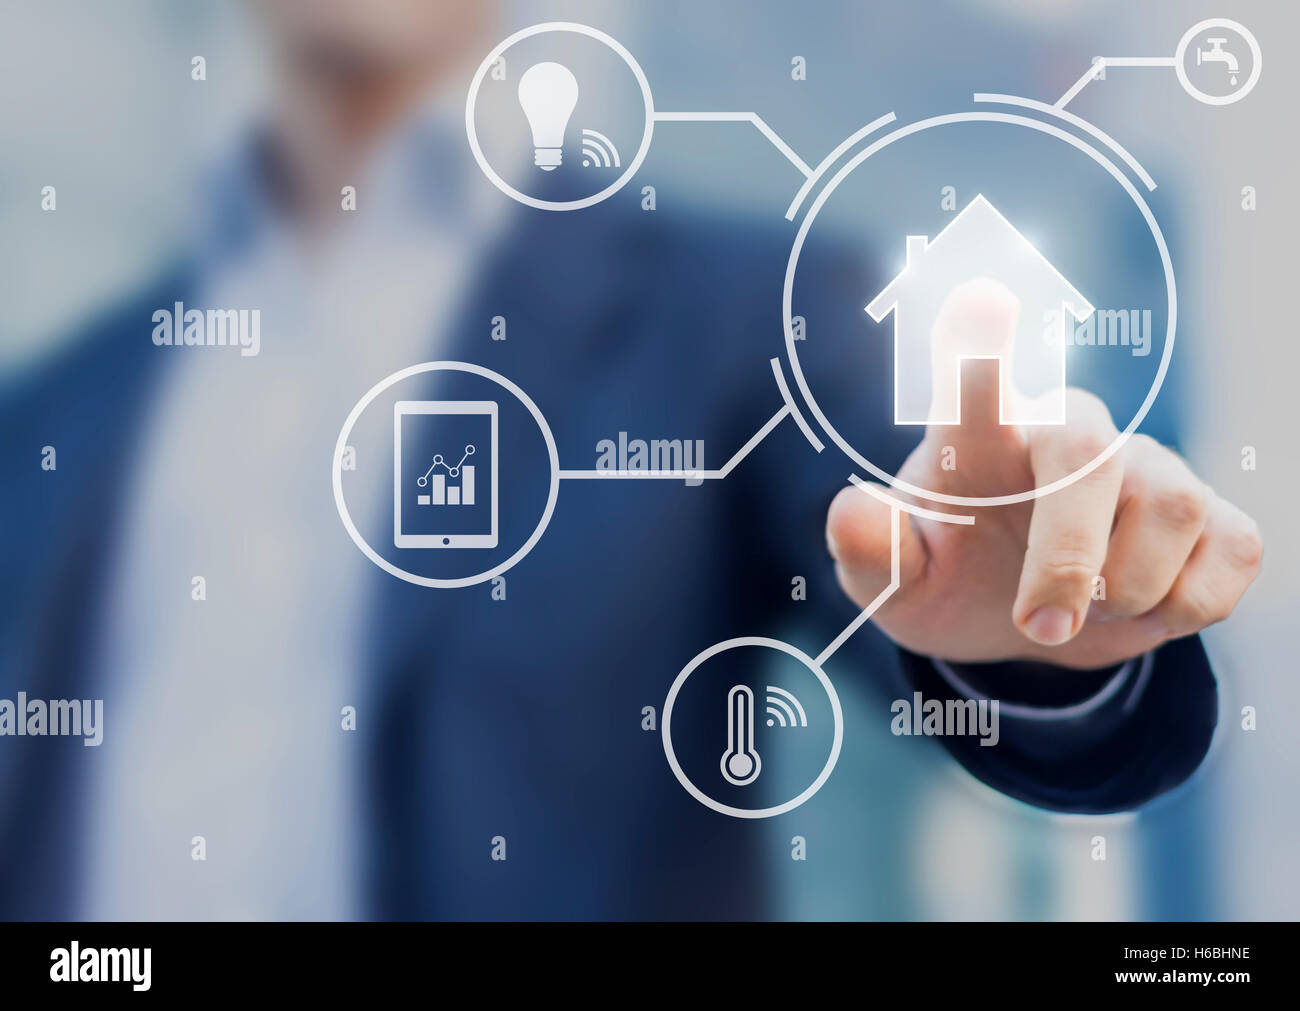 Smart home interface with button and icons providing control to temperature and lamps from mobile app - Stock Image